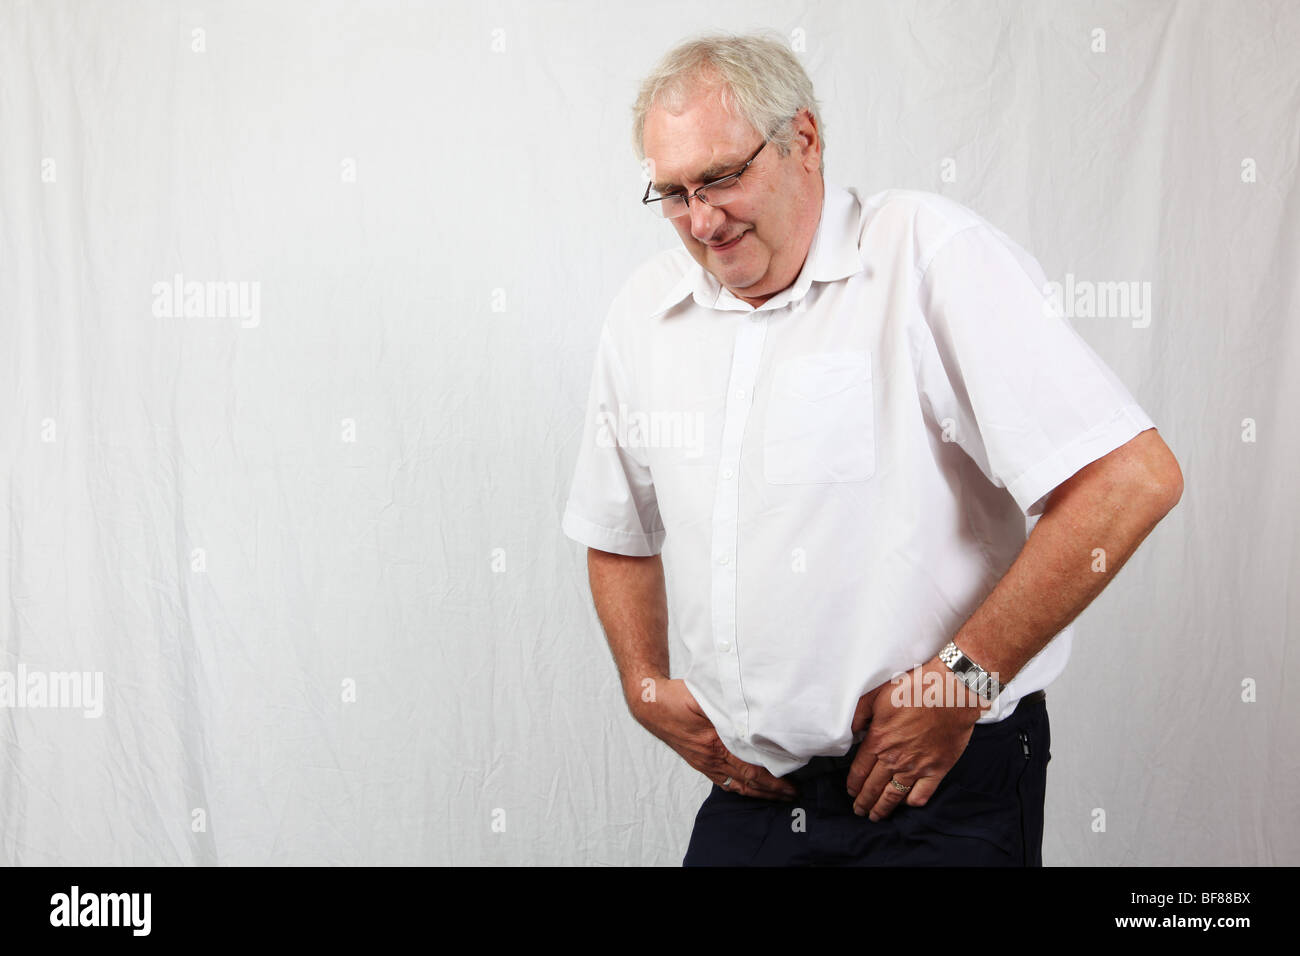 50s 60s grey haired man suffering from prostate cancer illness disease pain discomfort in groin pelvis area - Stock Image